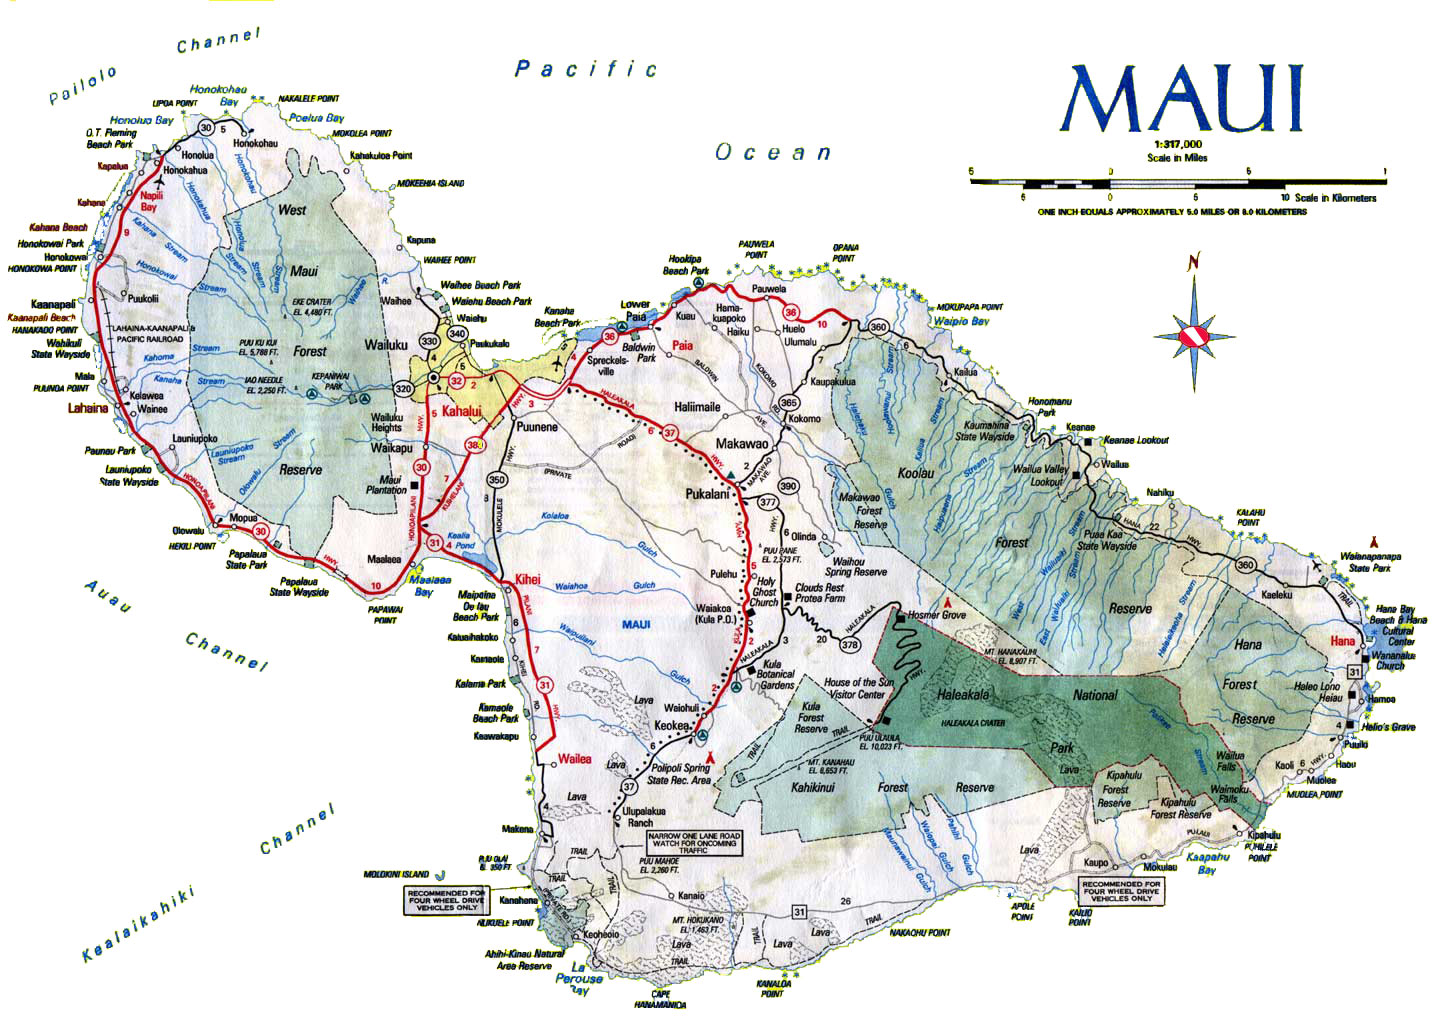 Maui Road Map Images Amp Pictures  Becuo